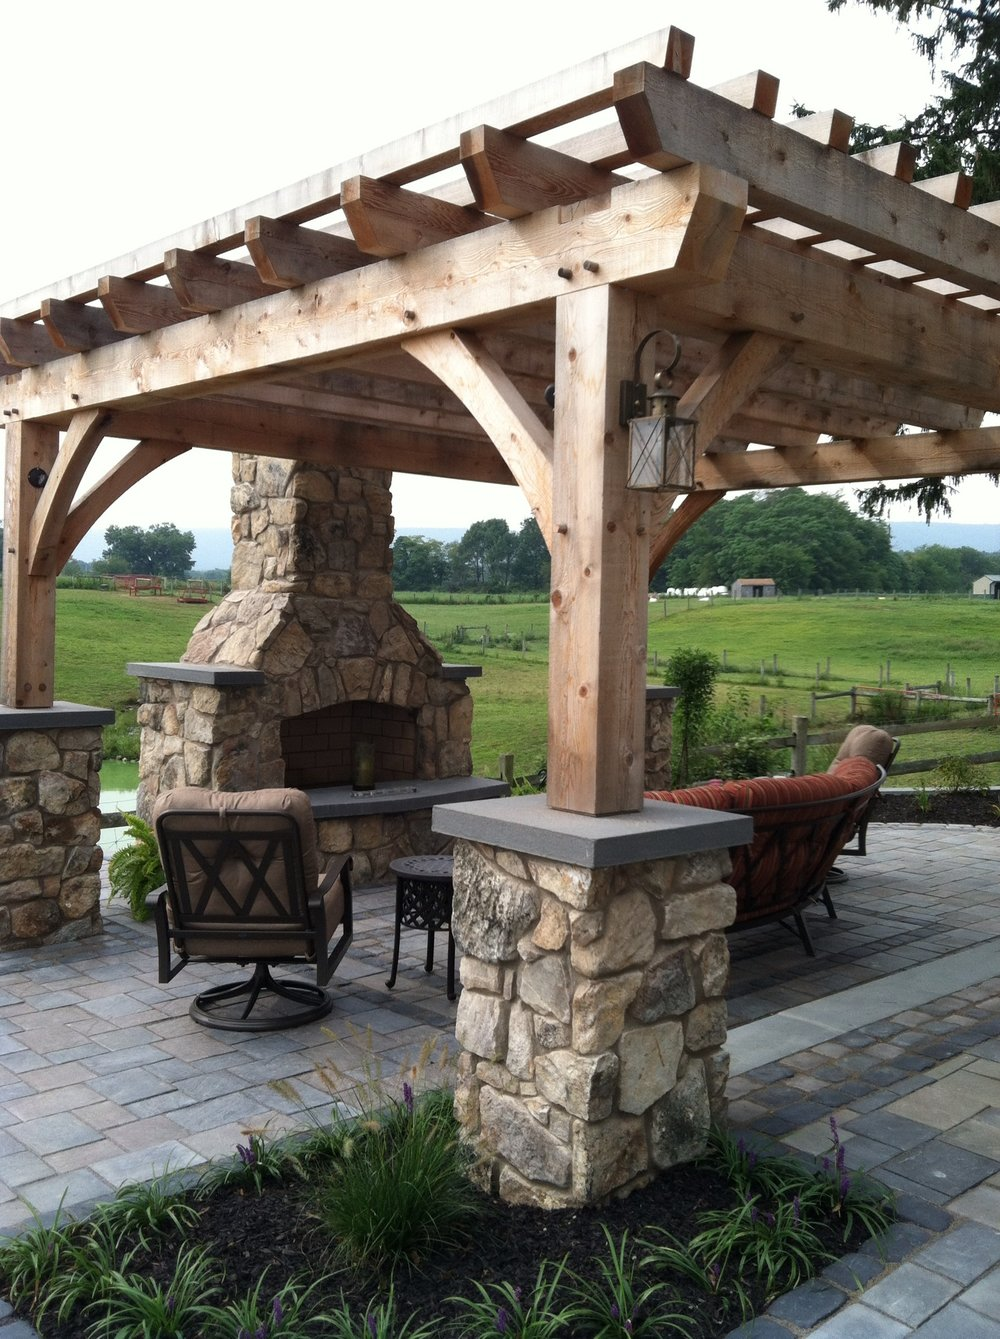 Selecting Color and Materials for Your Outdoor Fireplace in Pottsville, PA